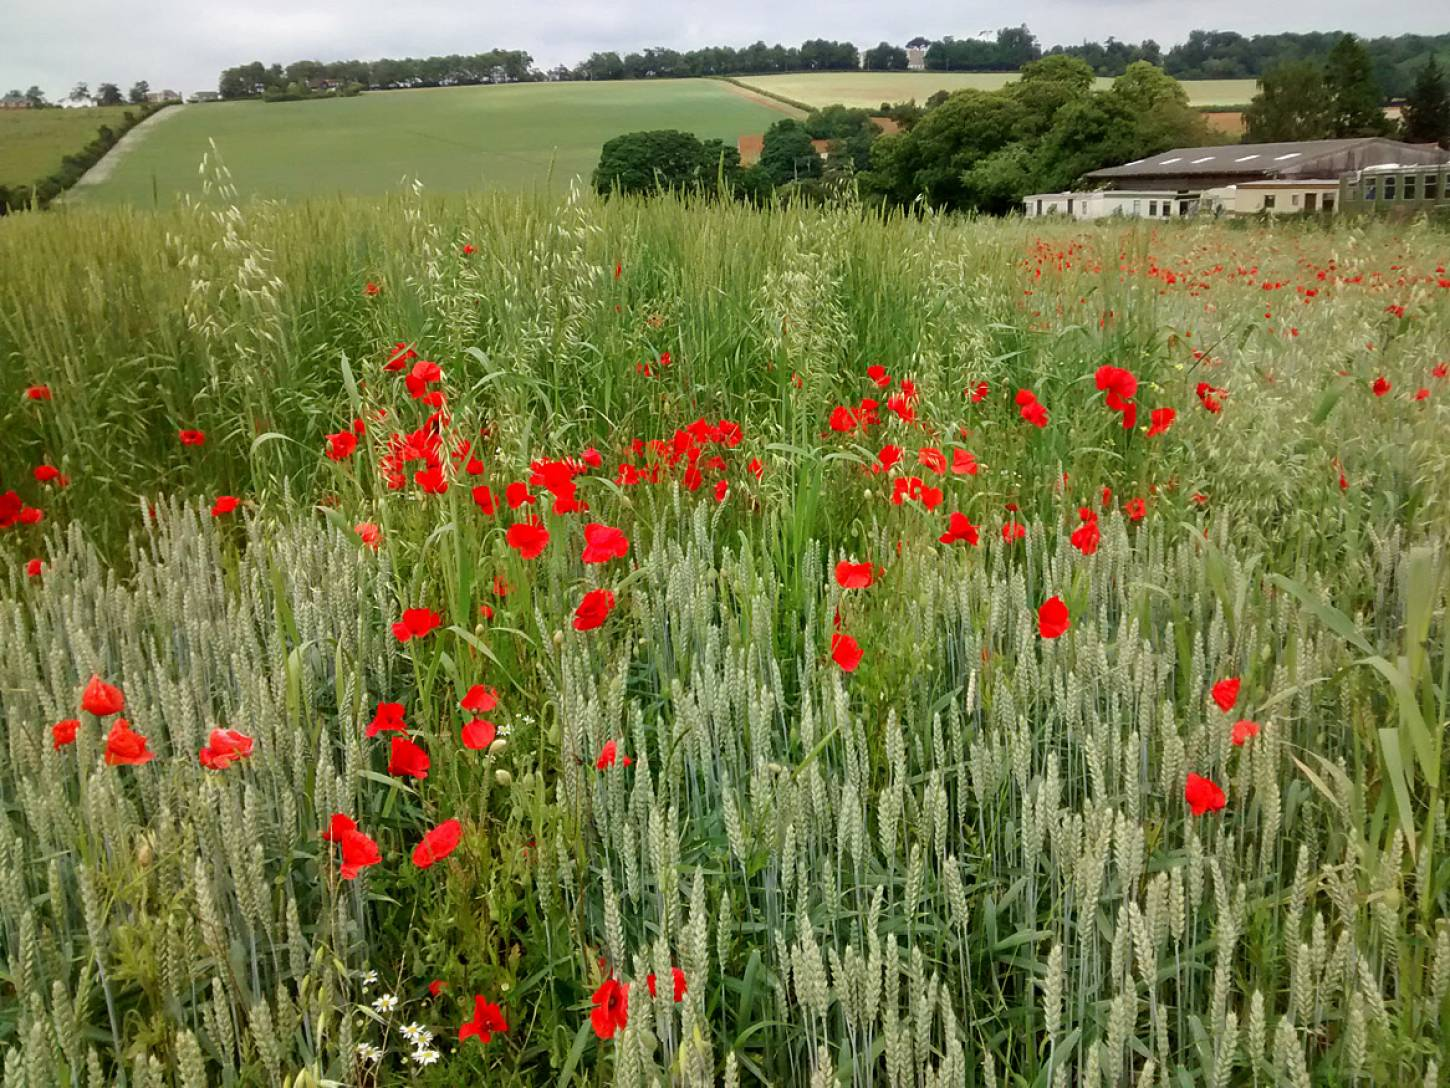 Perry Court biodynamic Farm review - modern wheat meets big sister - 4:00pm&nbsp;23<sup>rd</sup>&nbsp;Jun.&nbsp;'15  <a href='http://maps.google.com/?t=h&q=51.241199,1.021372&z=15' target=_blank><img src='http://www.brockwell-bake.org.uk/img/marker.png' style='border:none;vertical-align:top' height=16px></a>